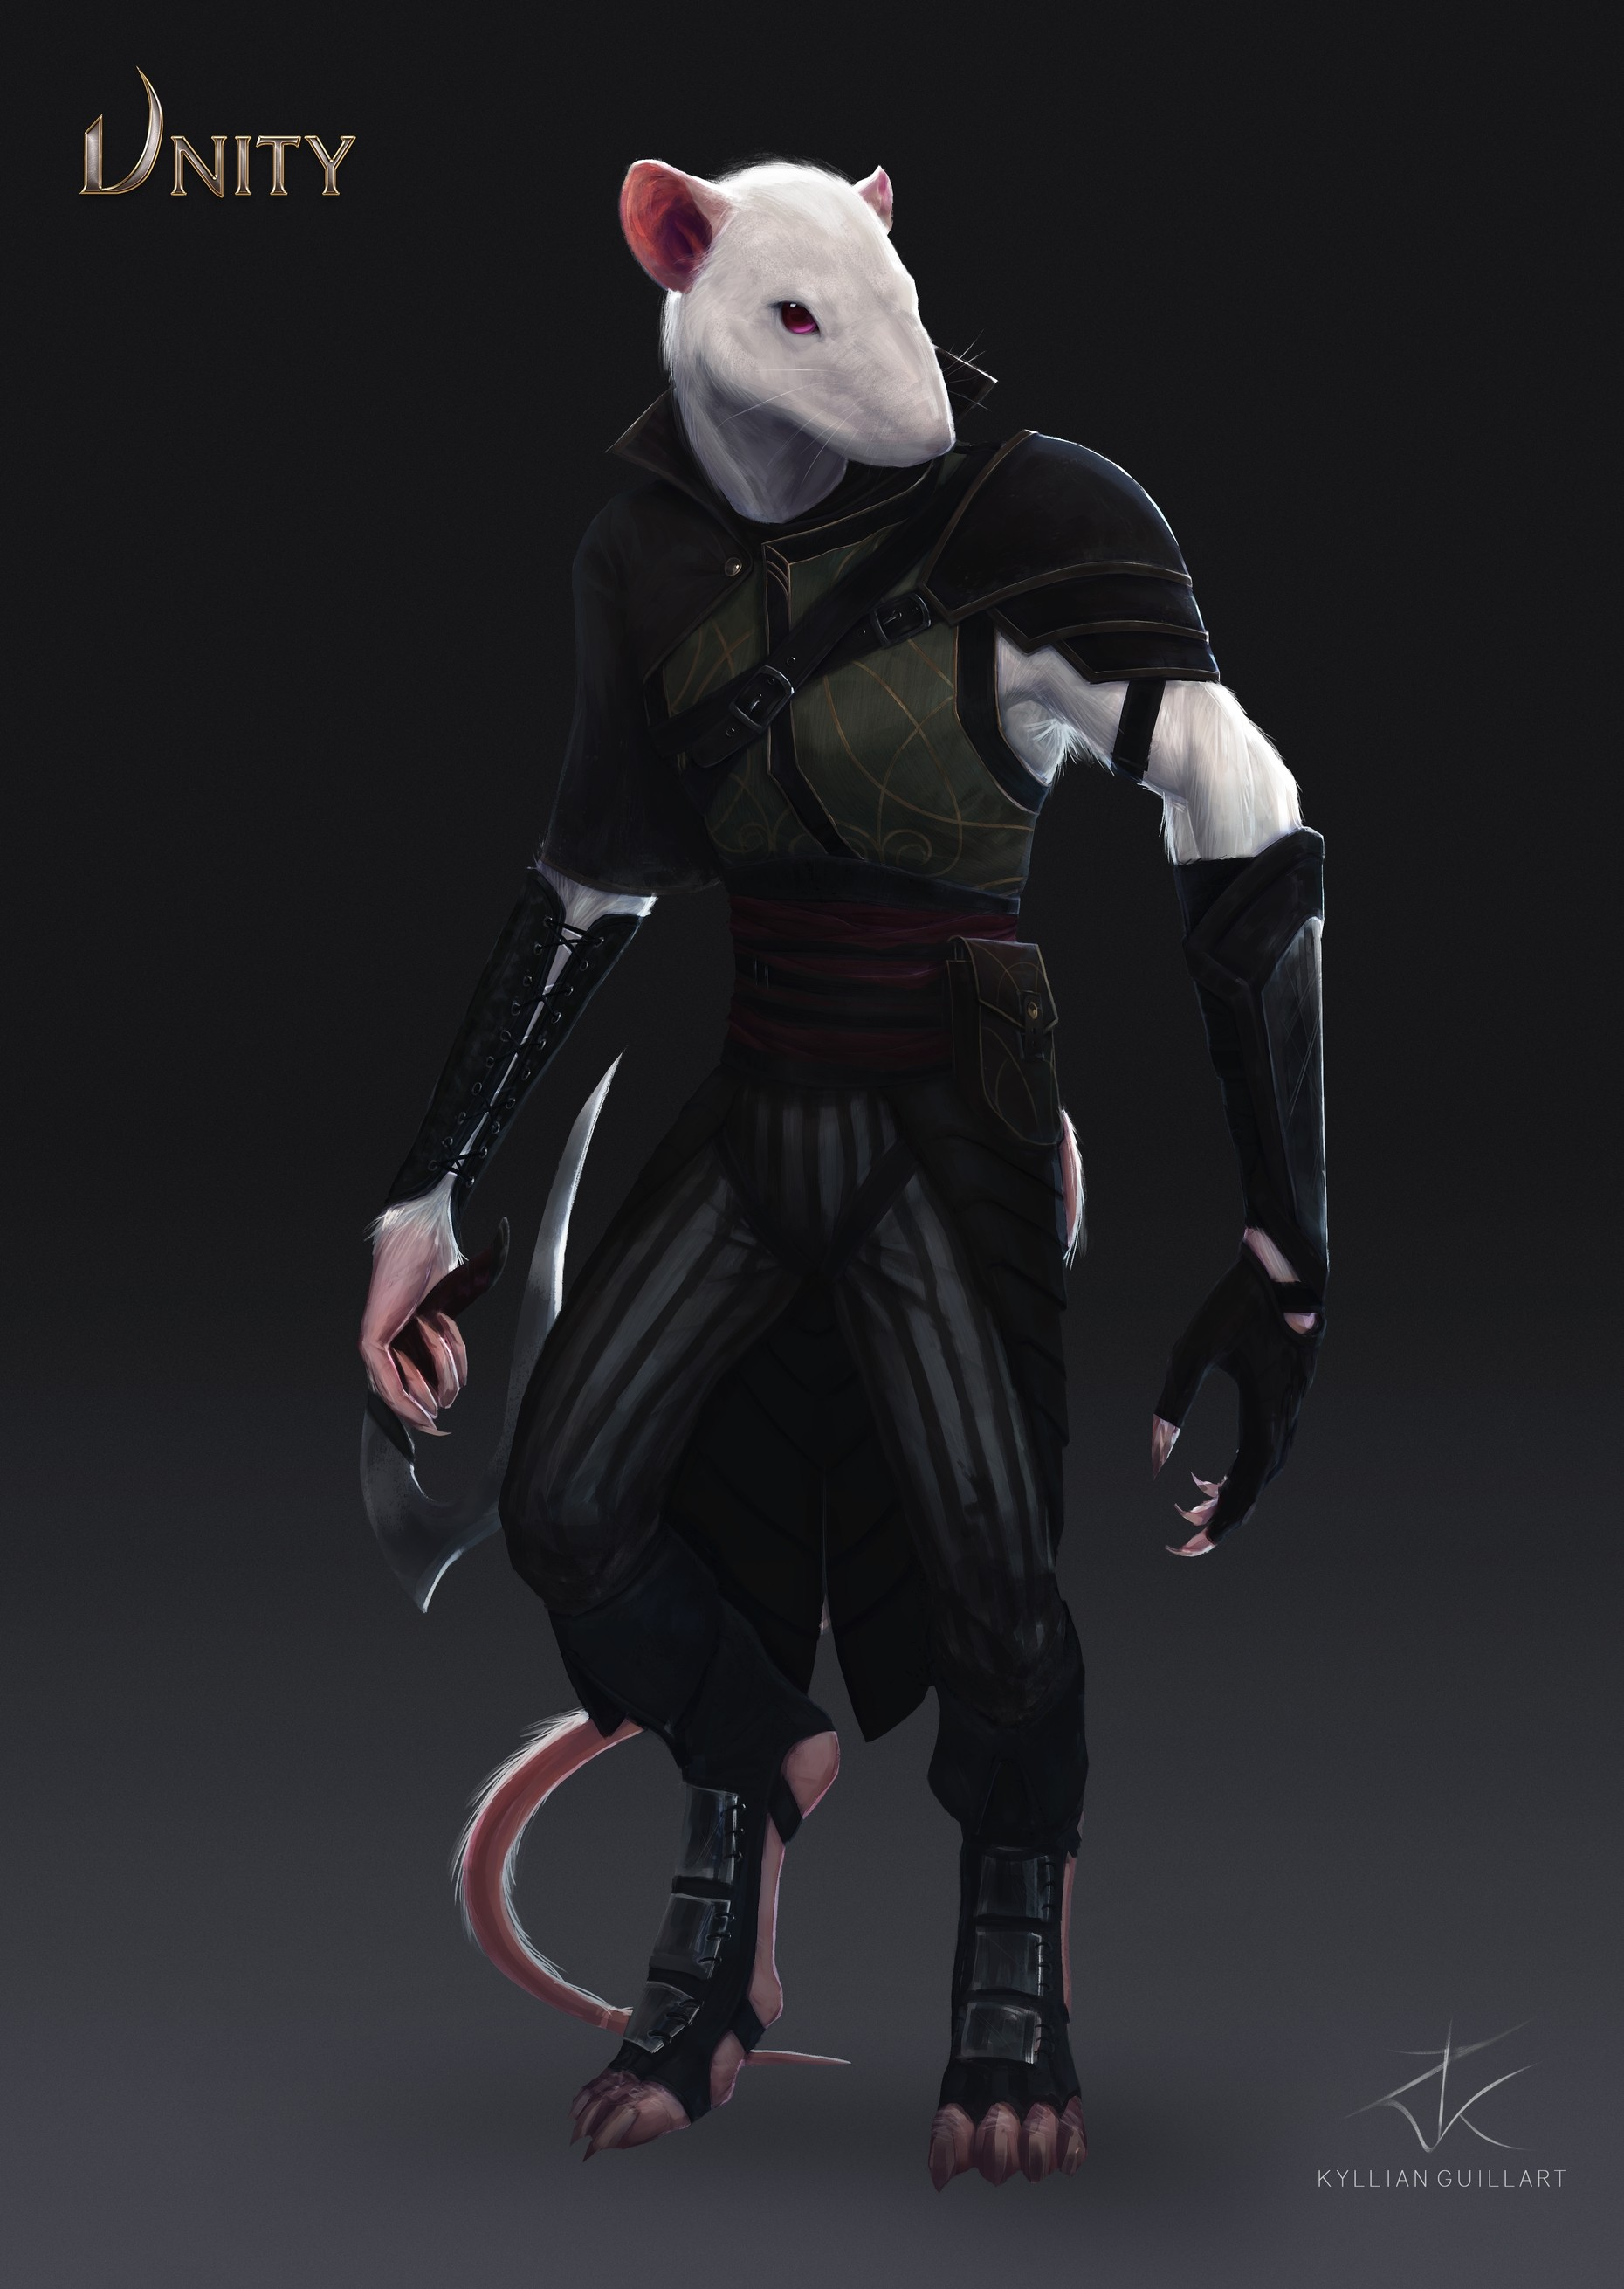 Kyllian guillart albino rat assassin unity lodaligae lighter internet version